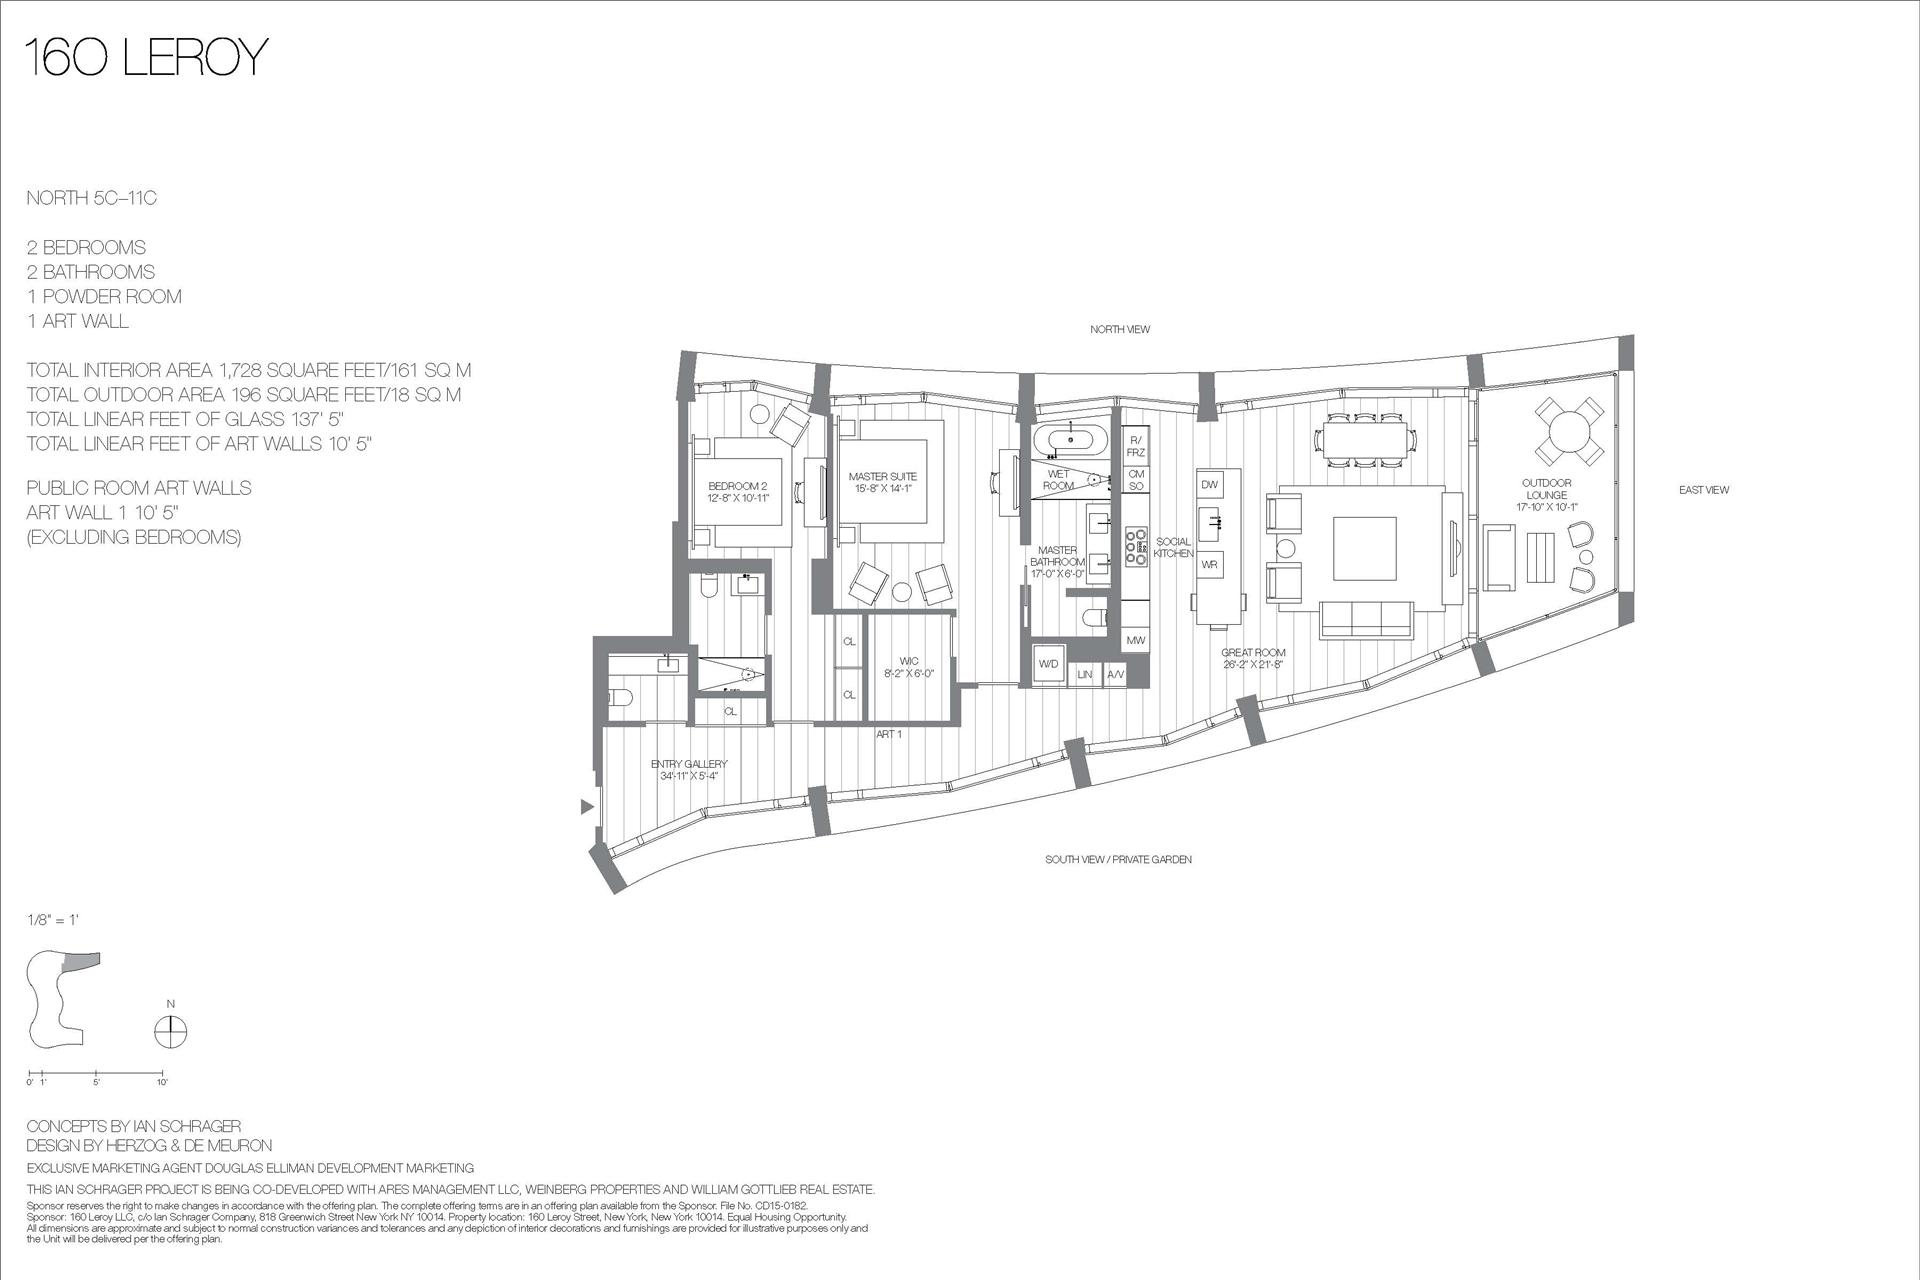 Floor plan of 160 Leroy St, NORTH9C - West Village - Meatpacking District, New York